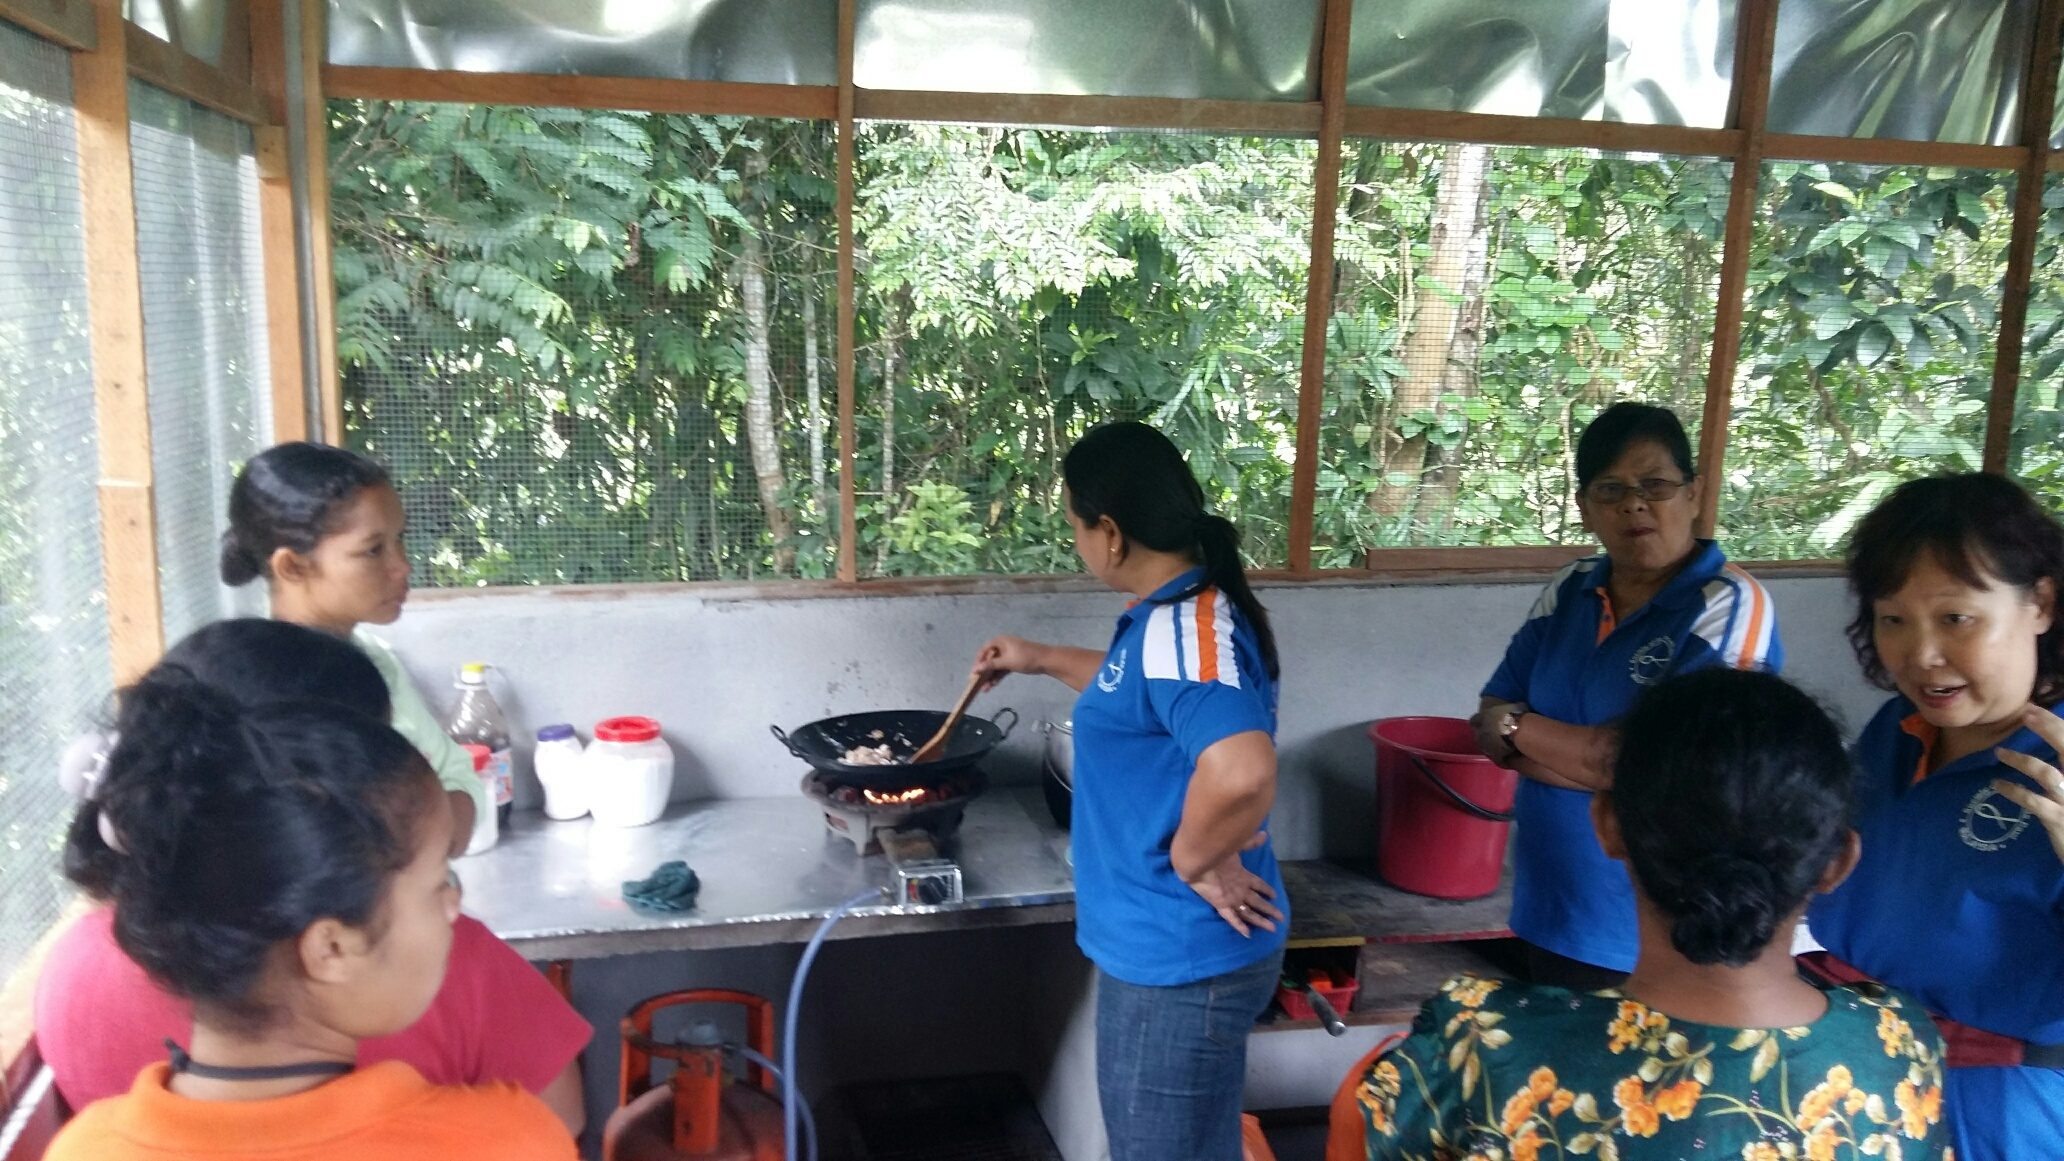 SSVP cooking class at Kg Sinju Education Centre